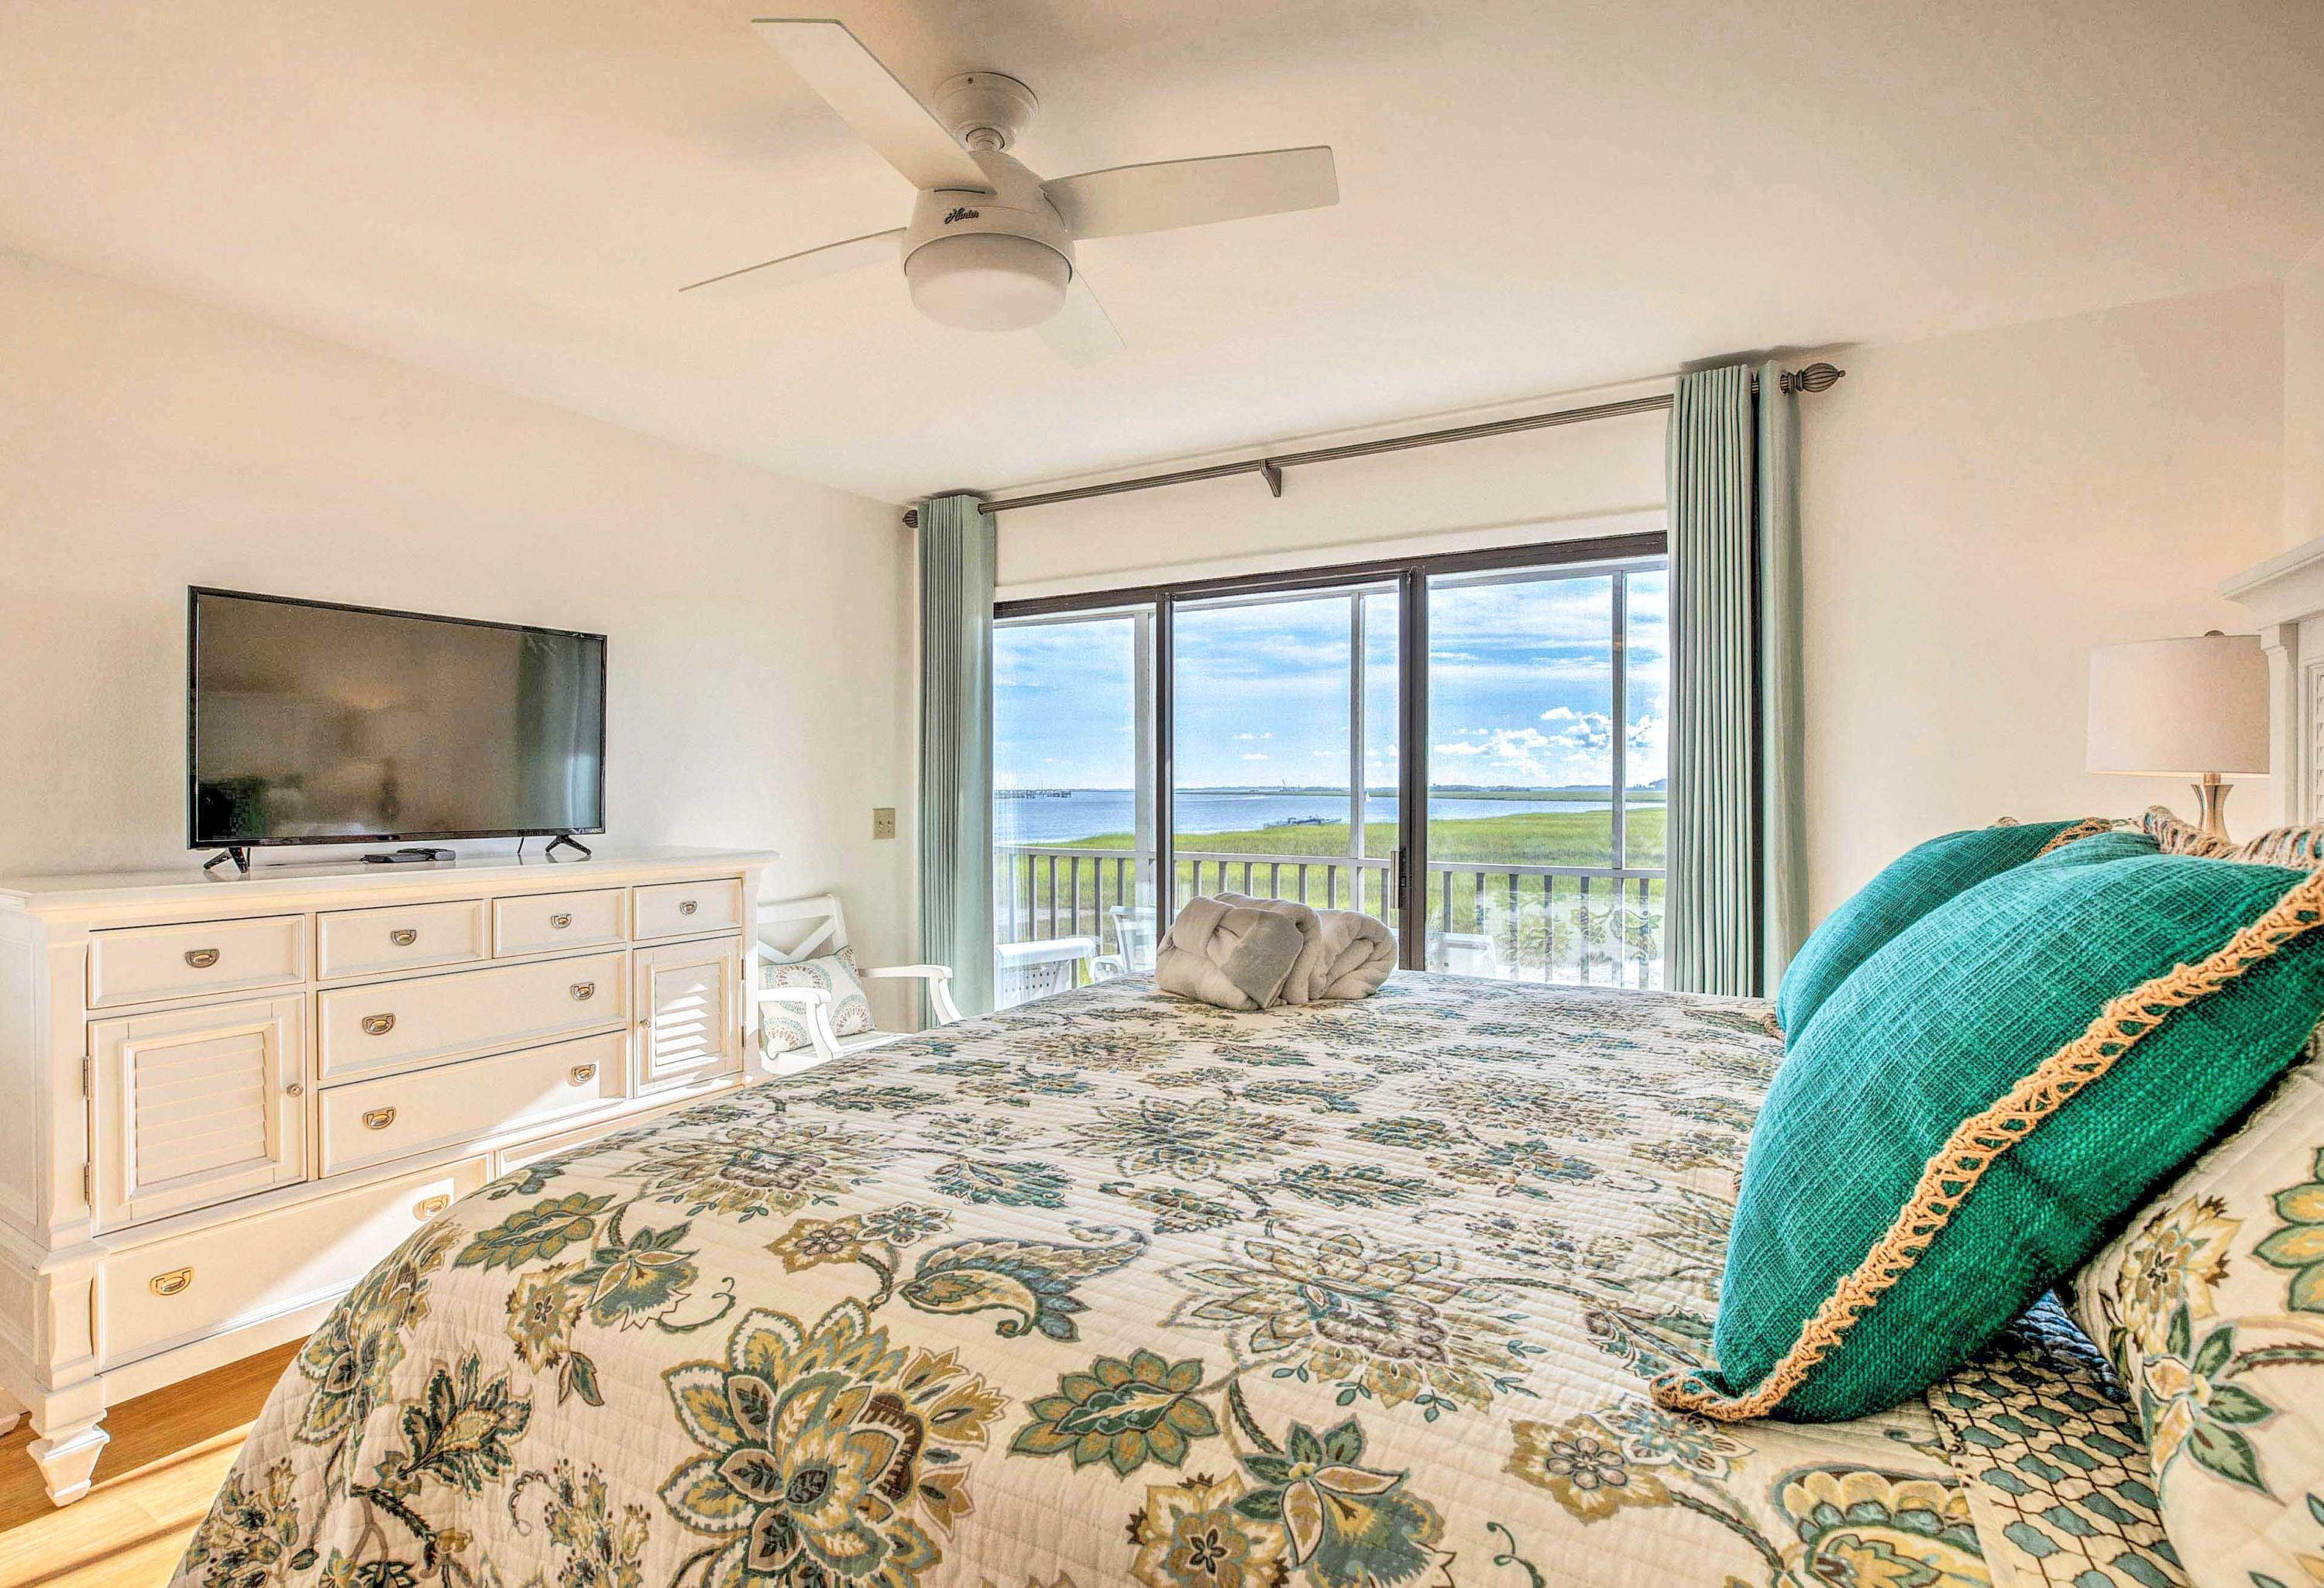 Mariners Cay Homes For Sale - 93 Mariners Cay, Folly Beach, SC - 21